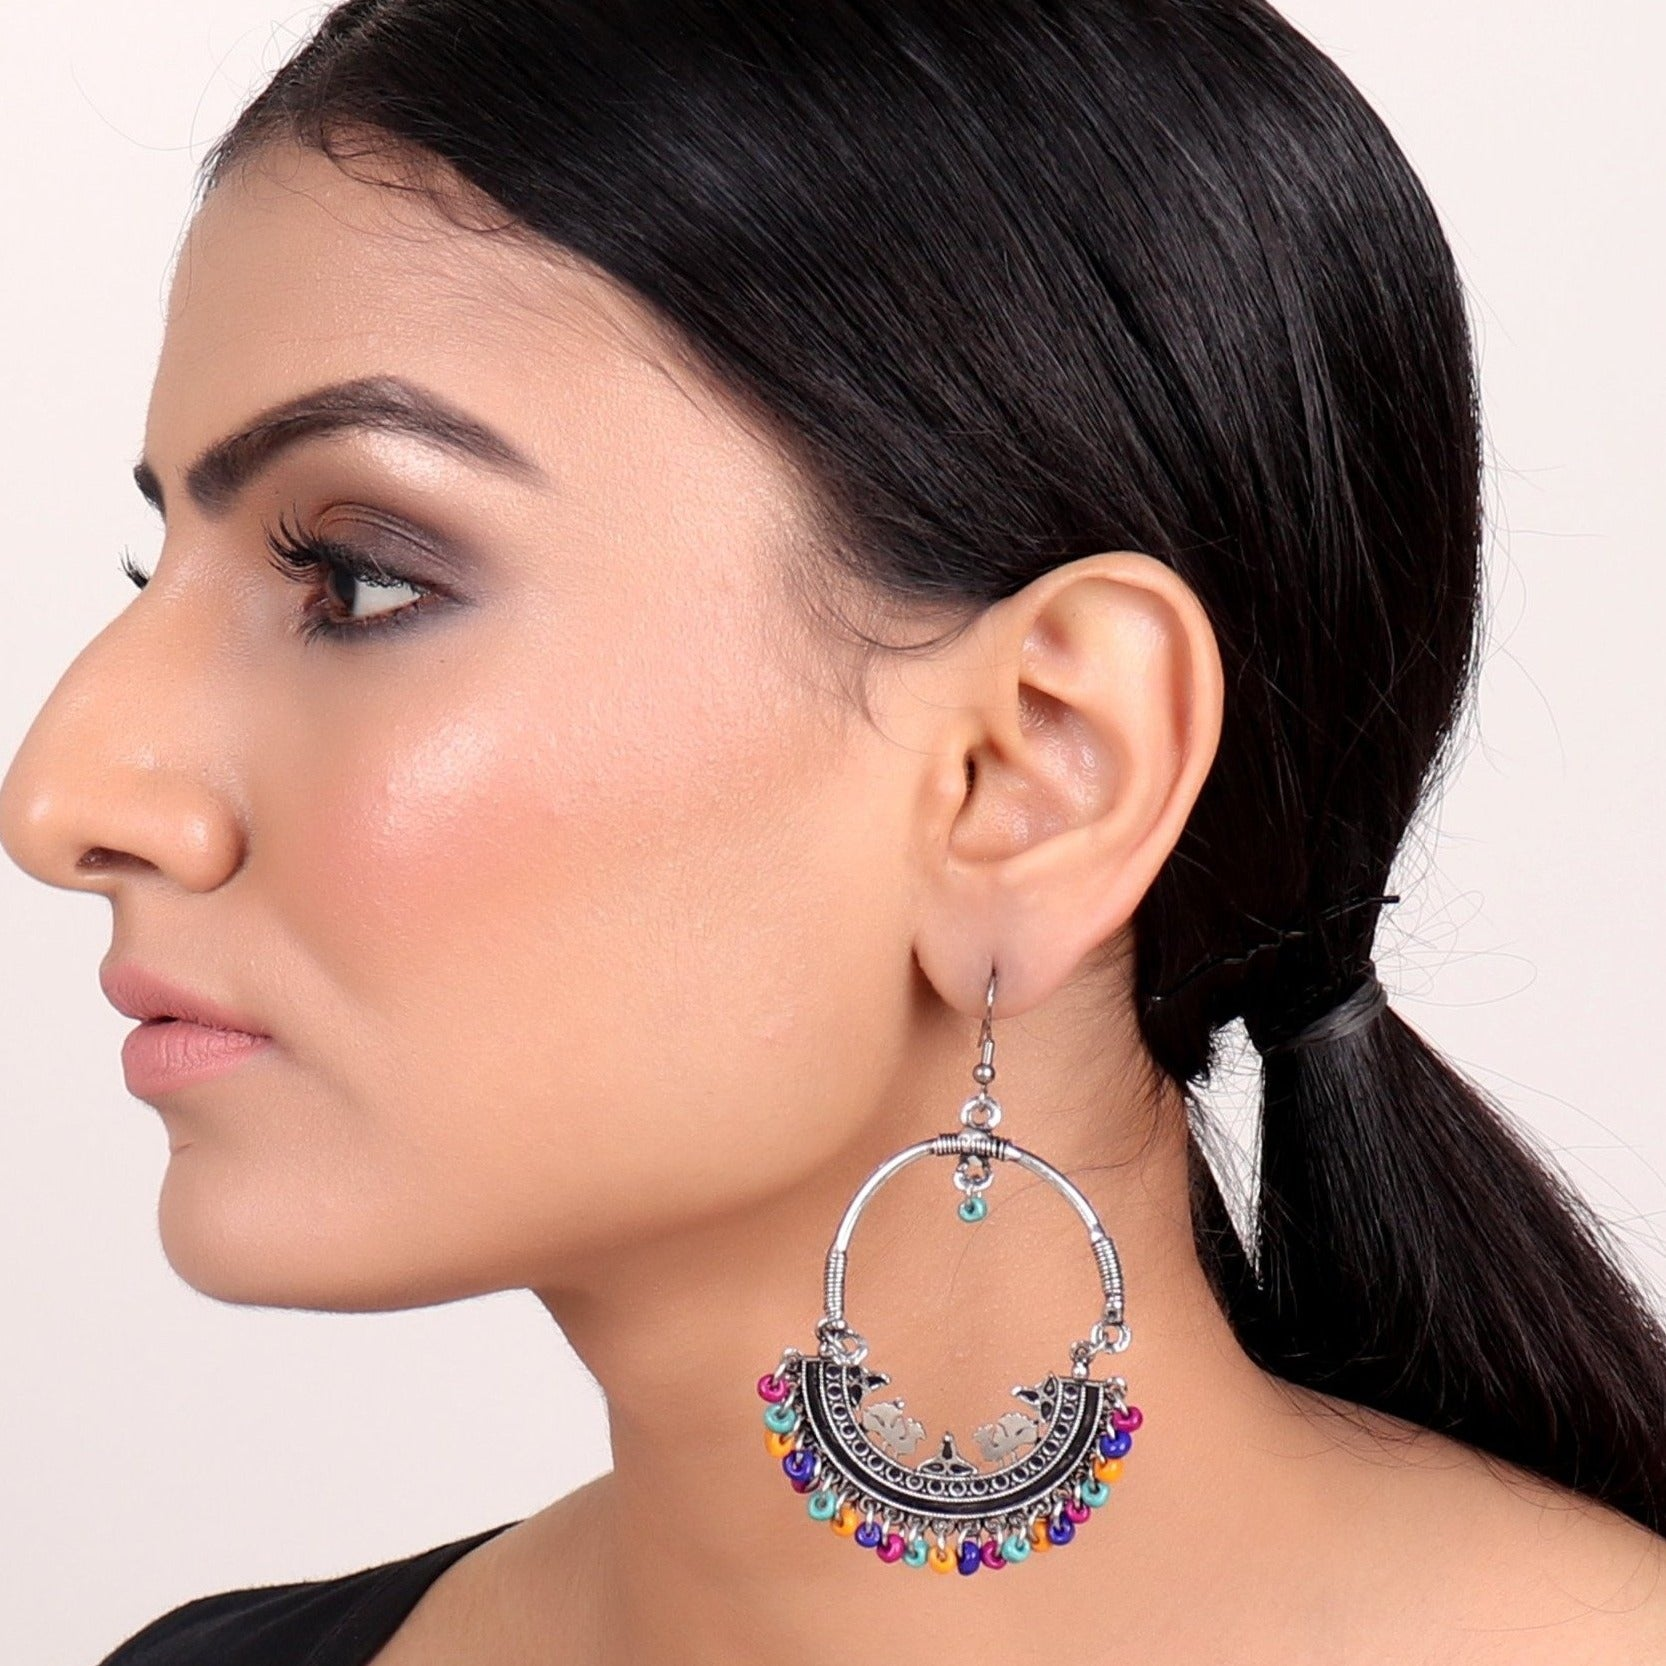 Earrings,Afghan Inspiration Baali with multicolored beads - Cippele Multi Store